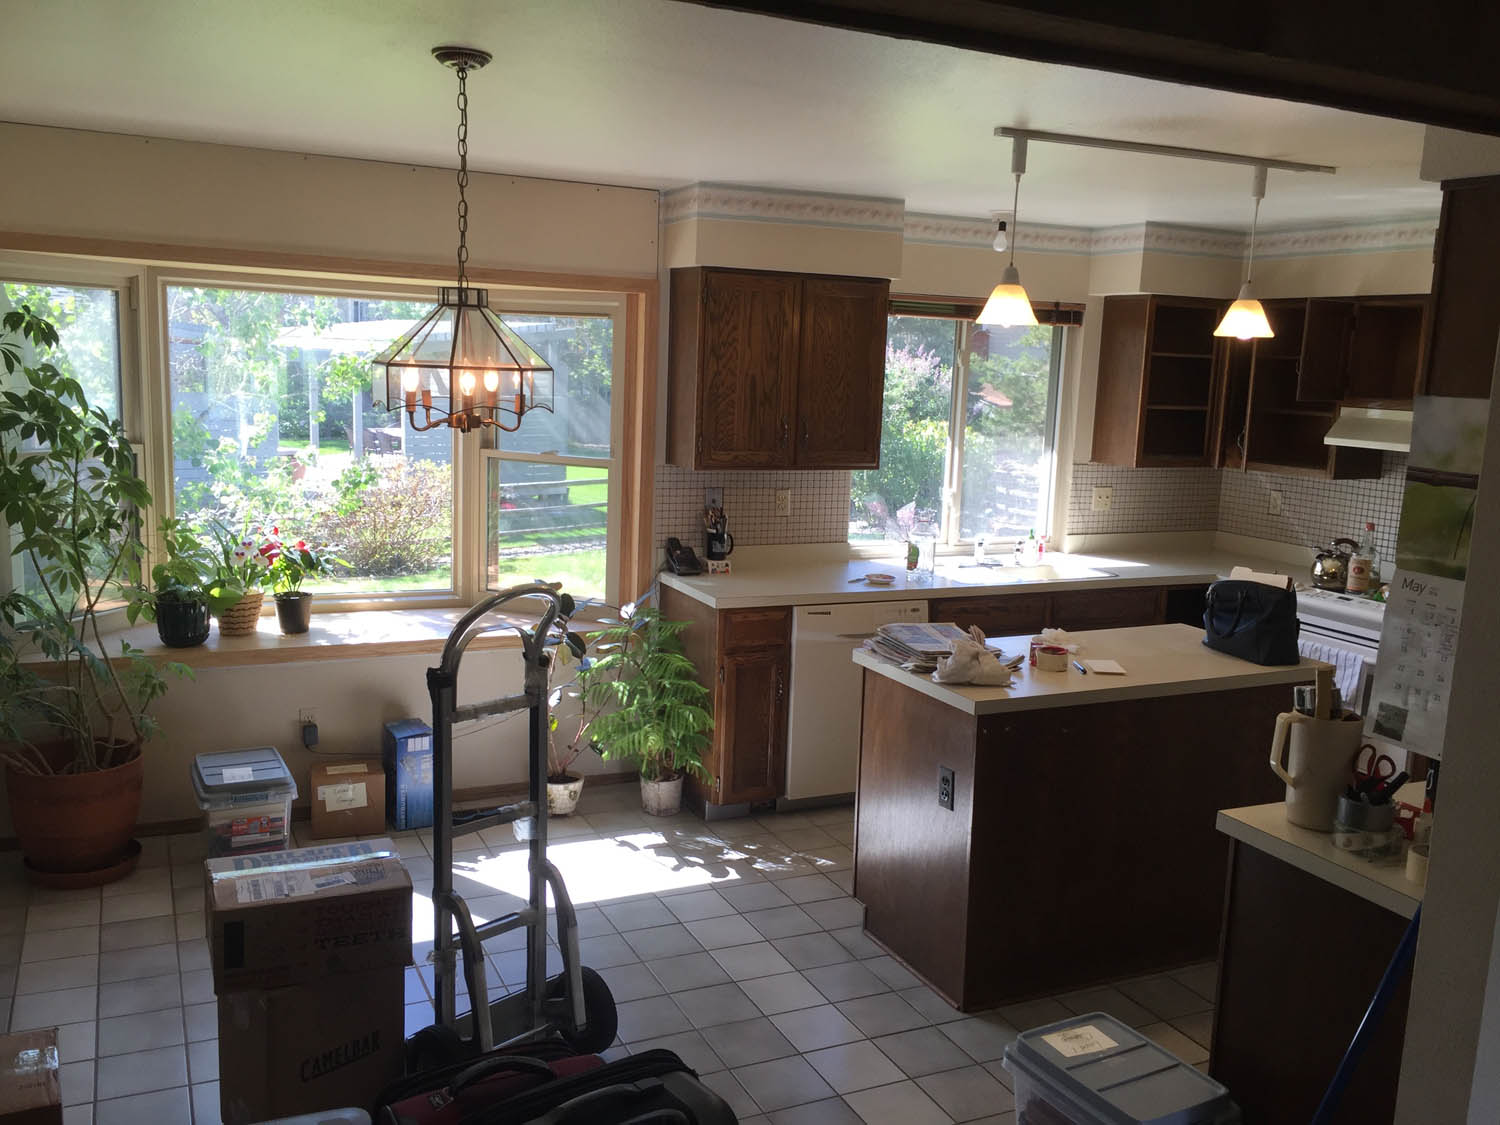 Kitchen remodel: before, with soffits above cabinets